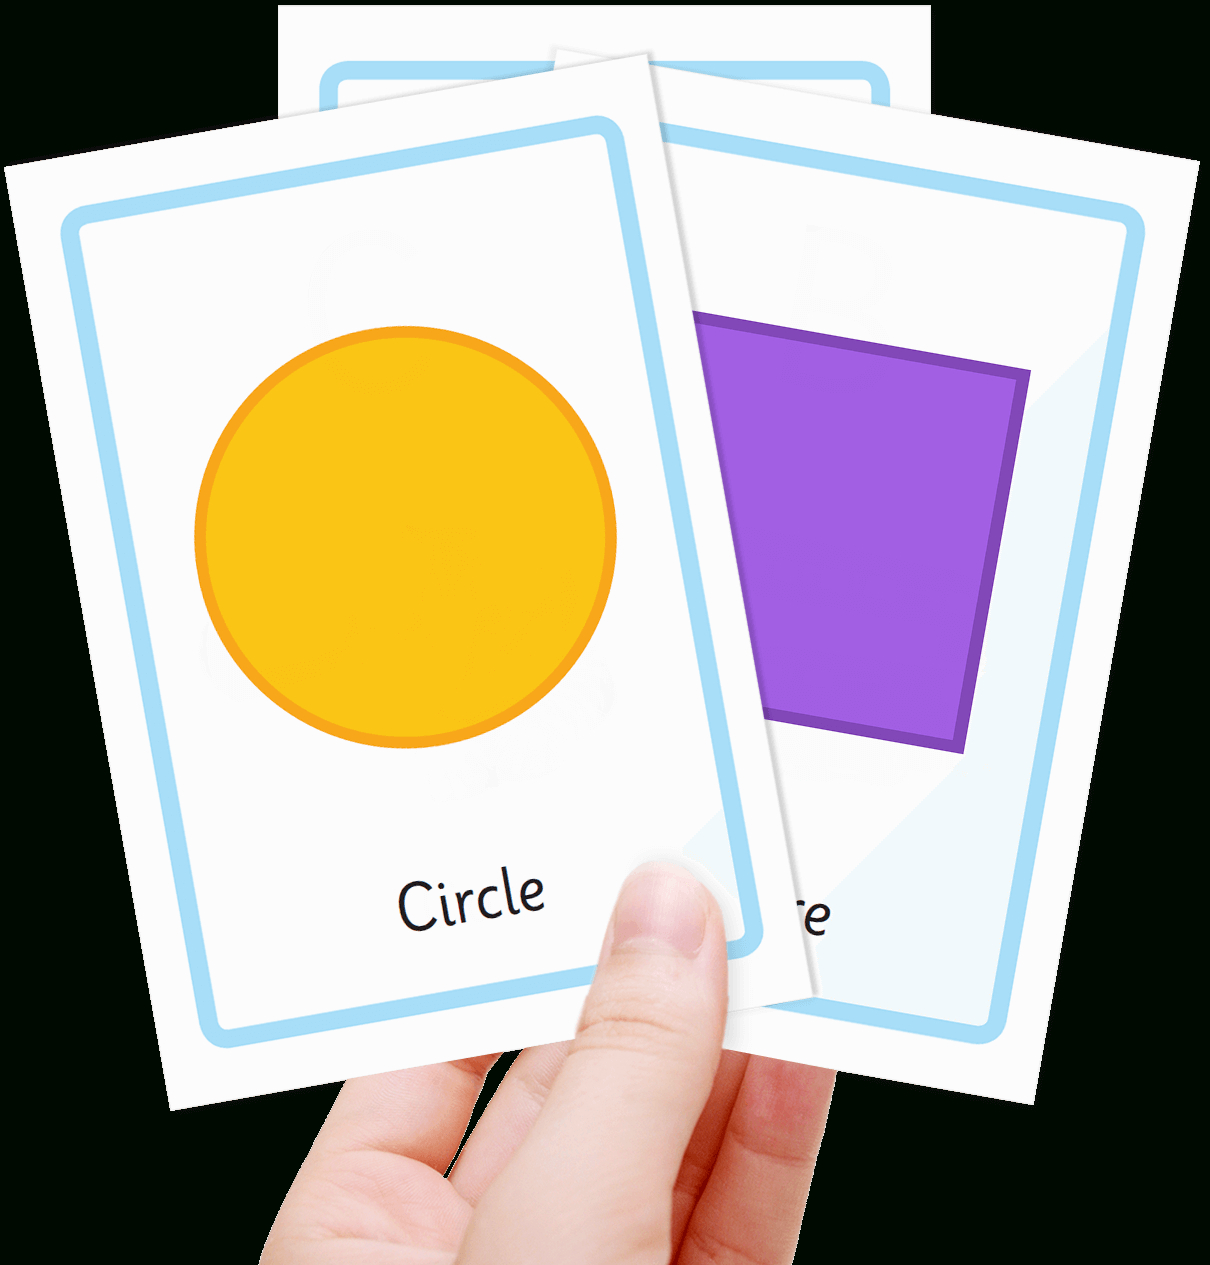 Free Shape Flashcards For Kids - Totcards - Large Printable Shapes Free